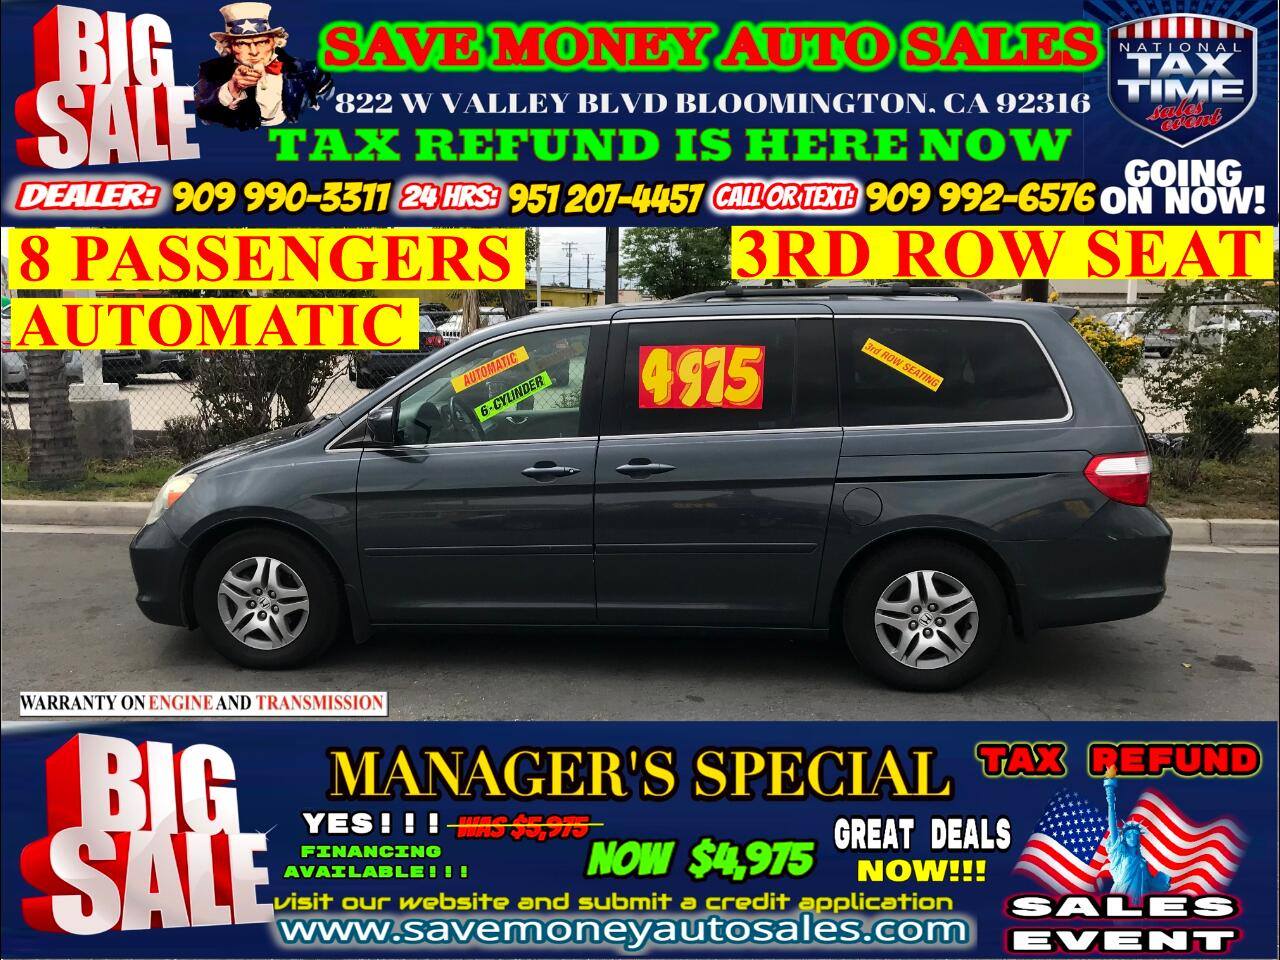 2006 Honda Odyssey EX-L W/DVD PLUS 3RD ROW SEAT AND MORE!!!!!